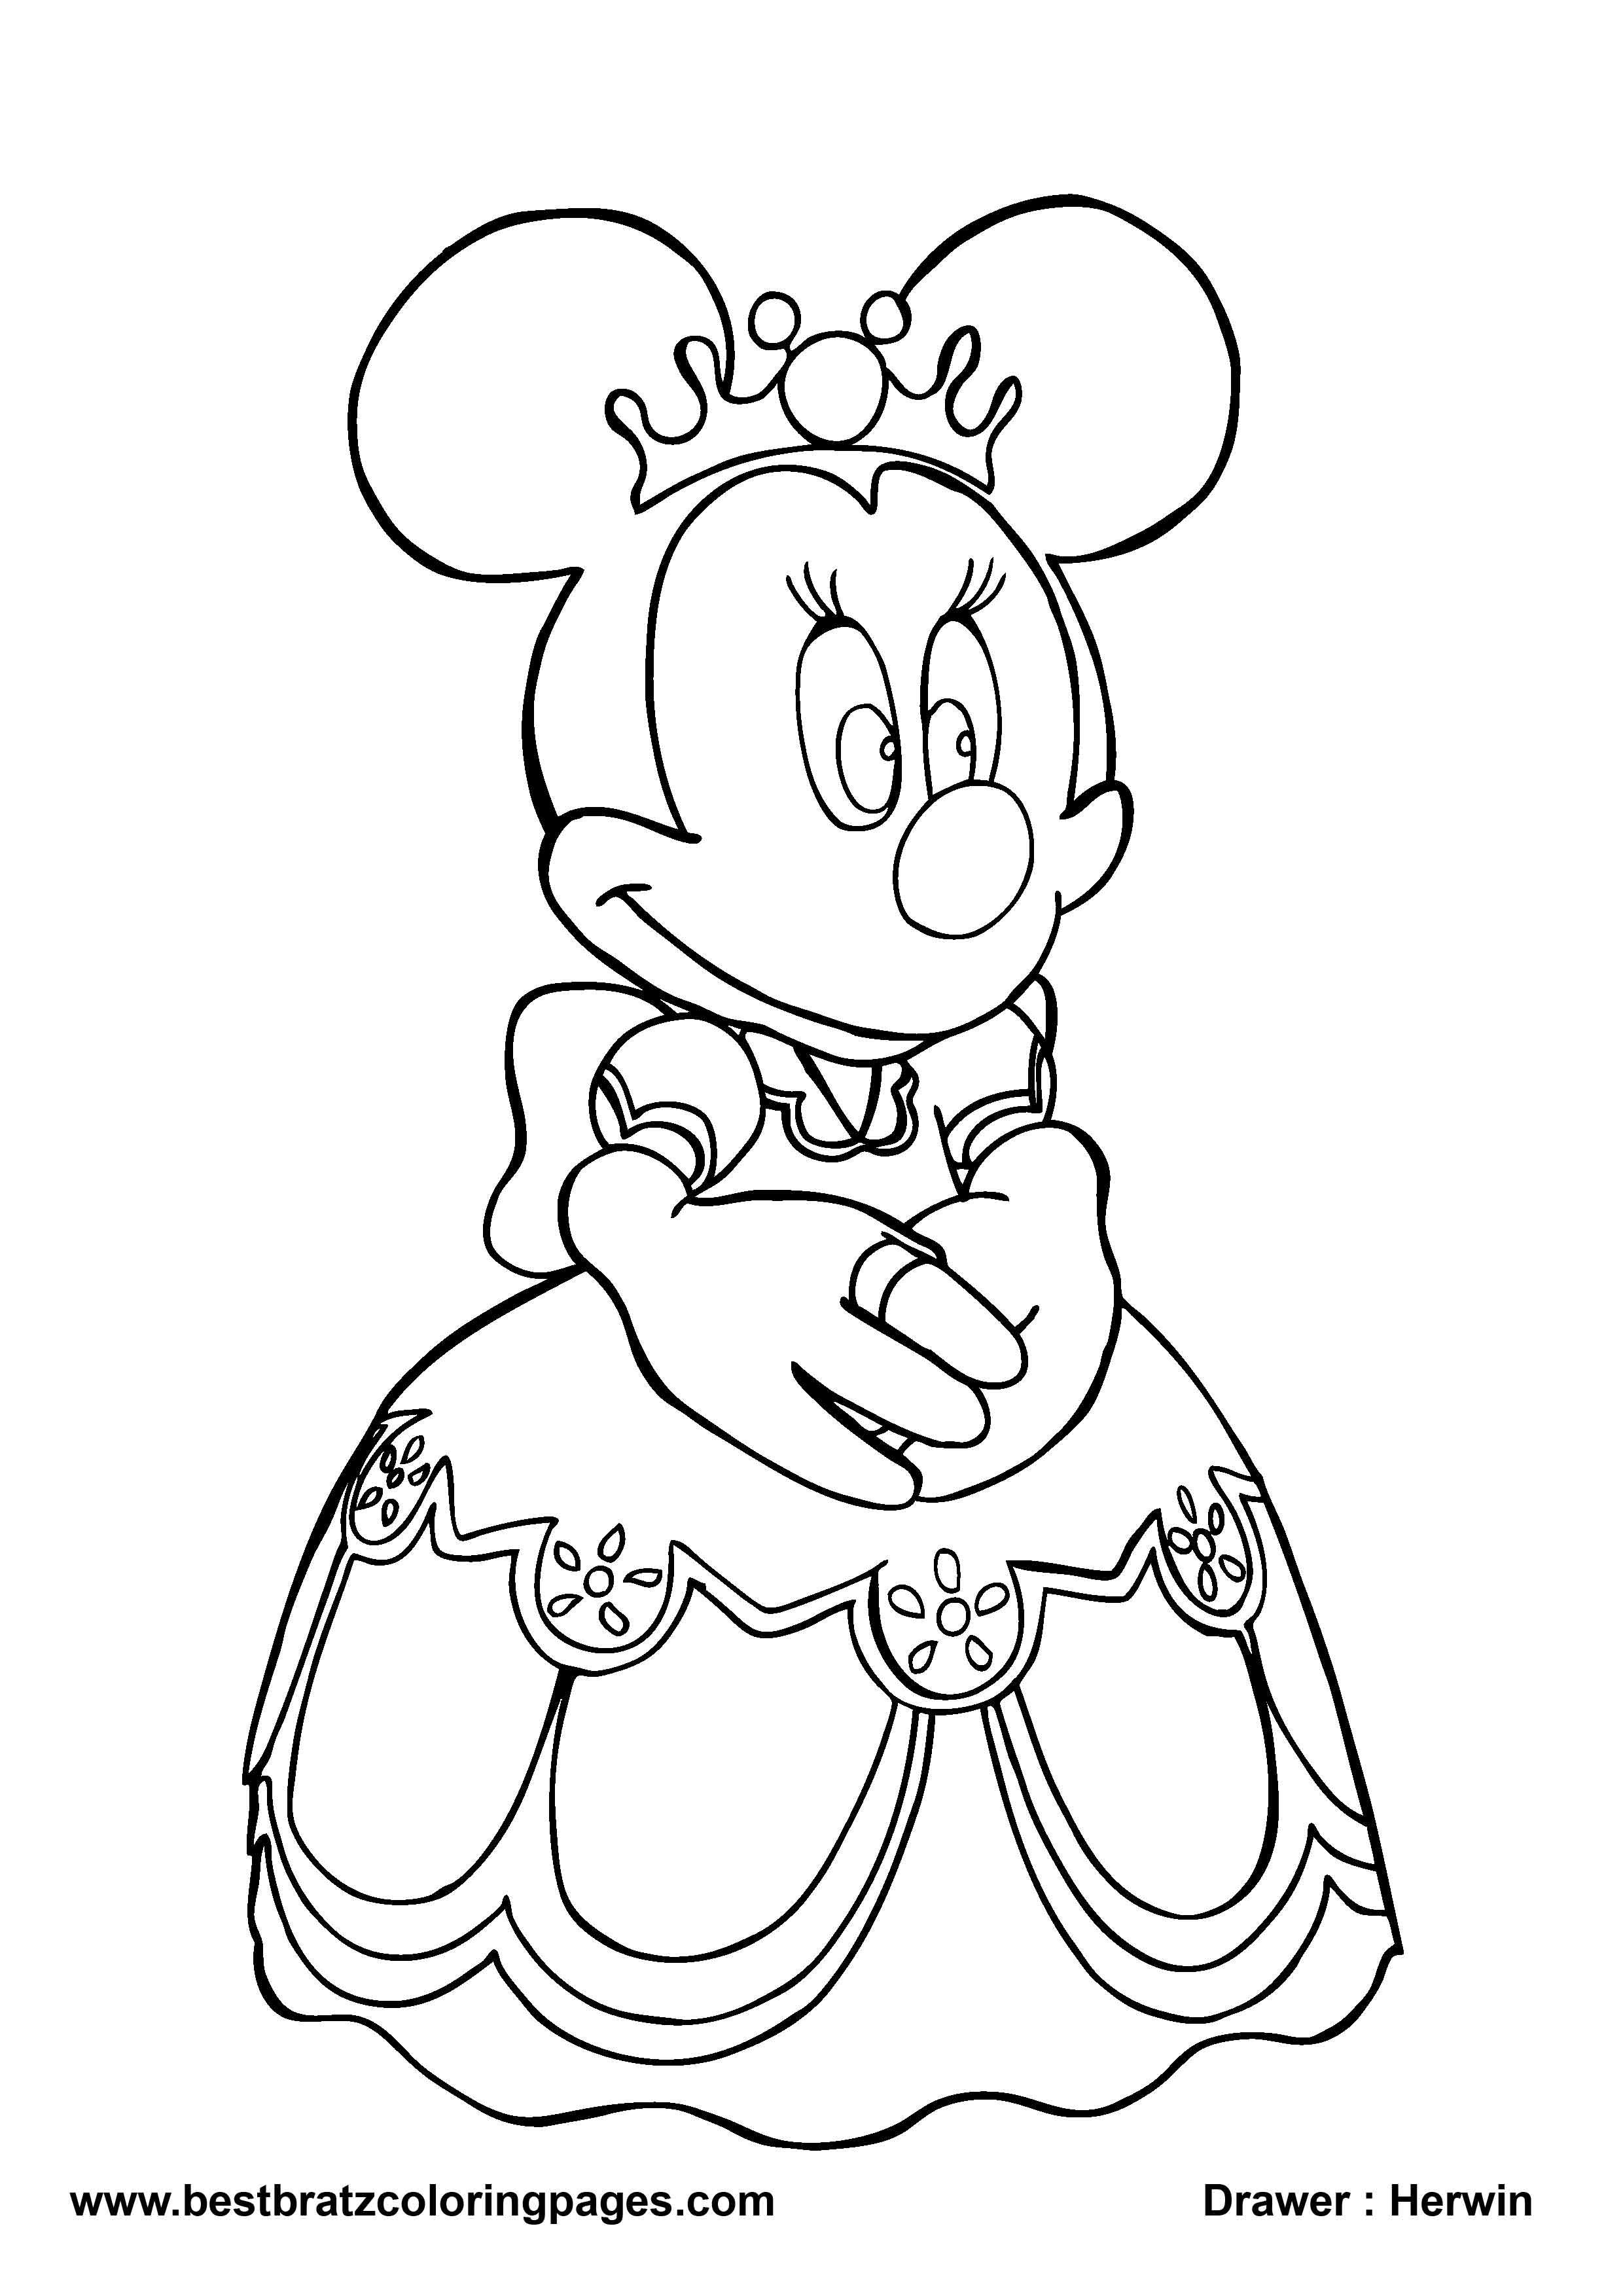 free minnie mouse printables minnie mouse coloring pages for girls best free coloring pages - Minnie Mouse Coloring Pages